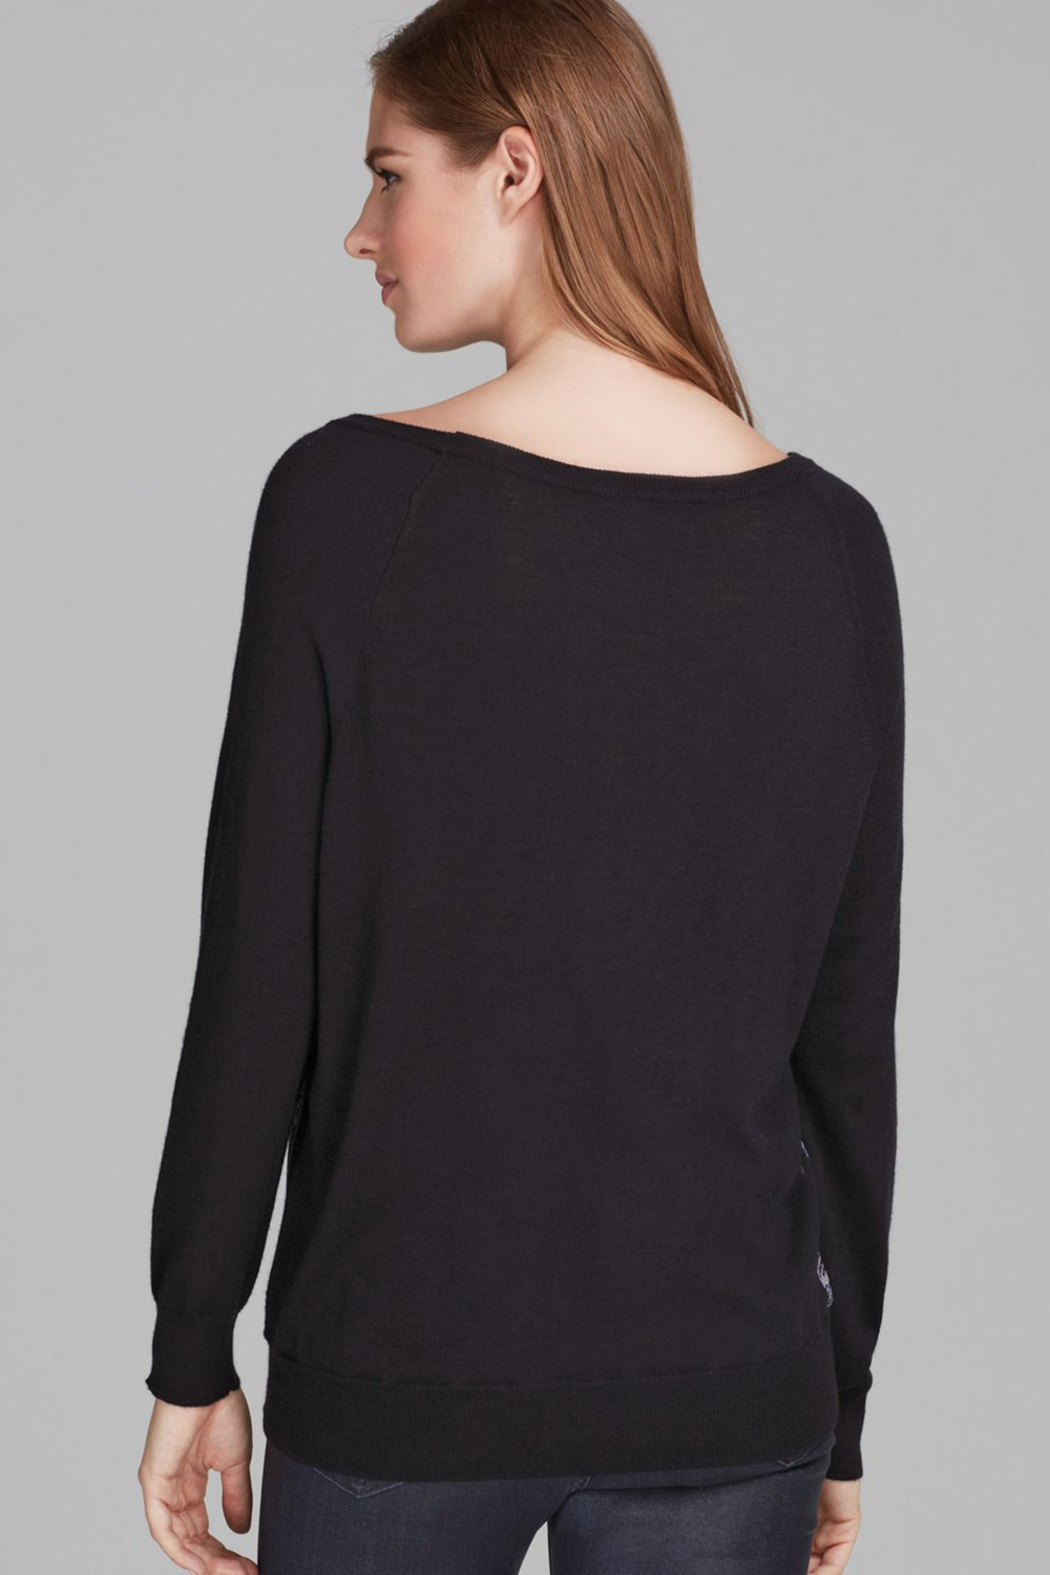 Joie Malena B Sweater - Front Full Image